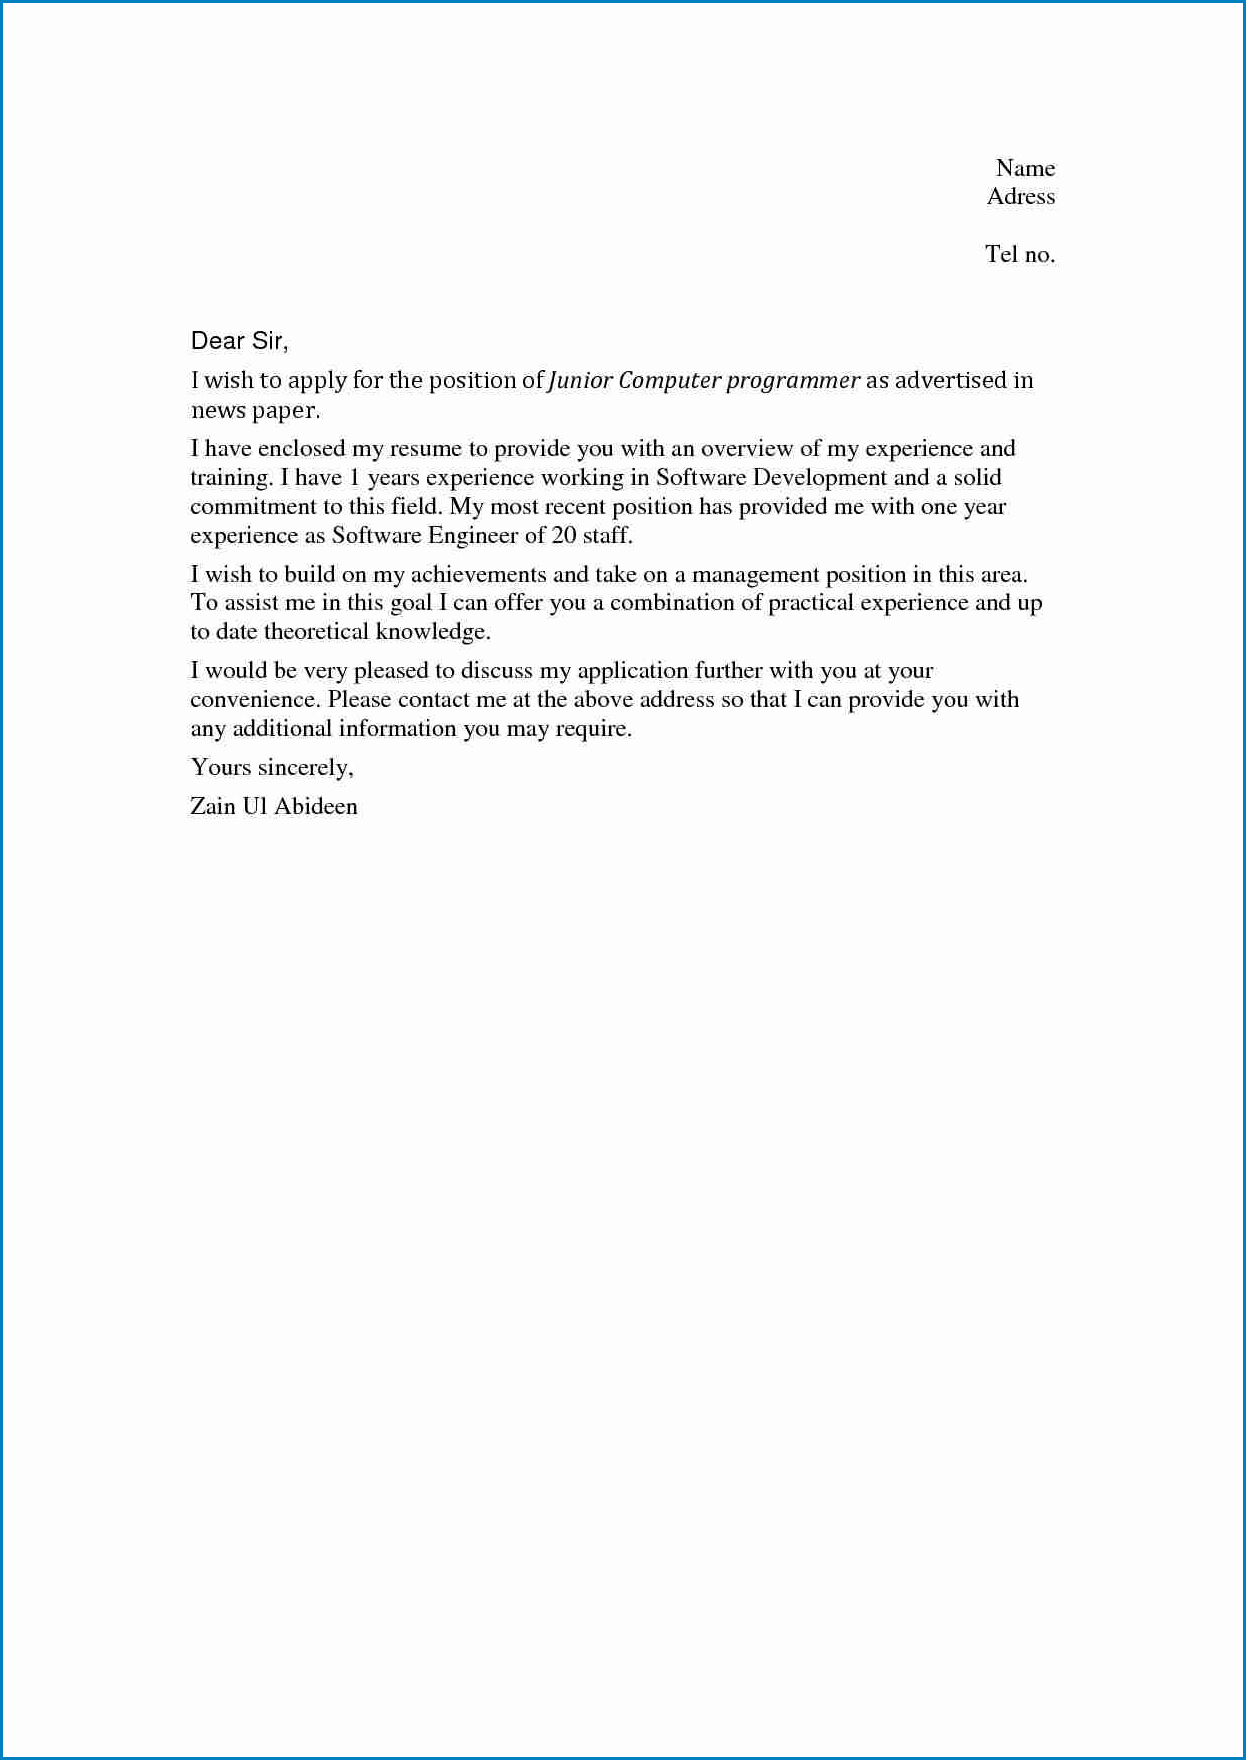 Sample of Job Cover Letter No Experience